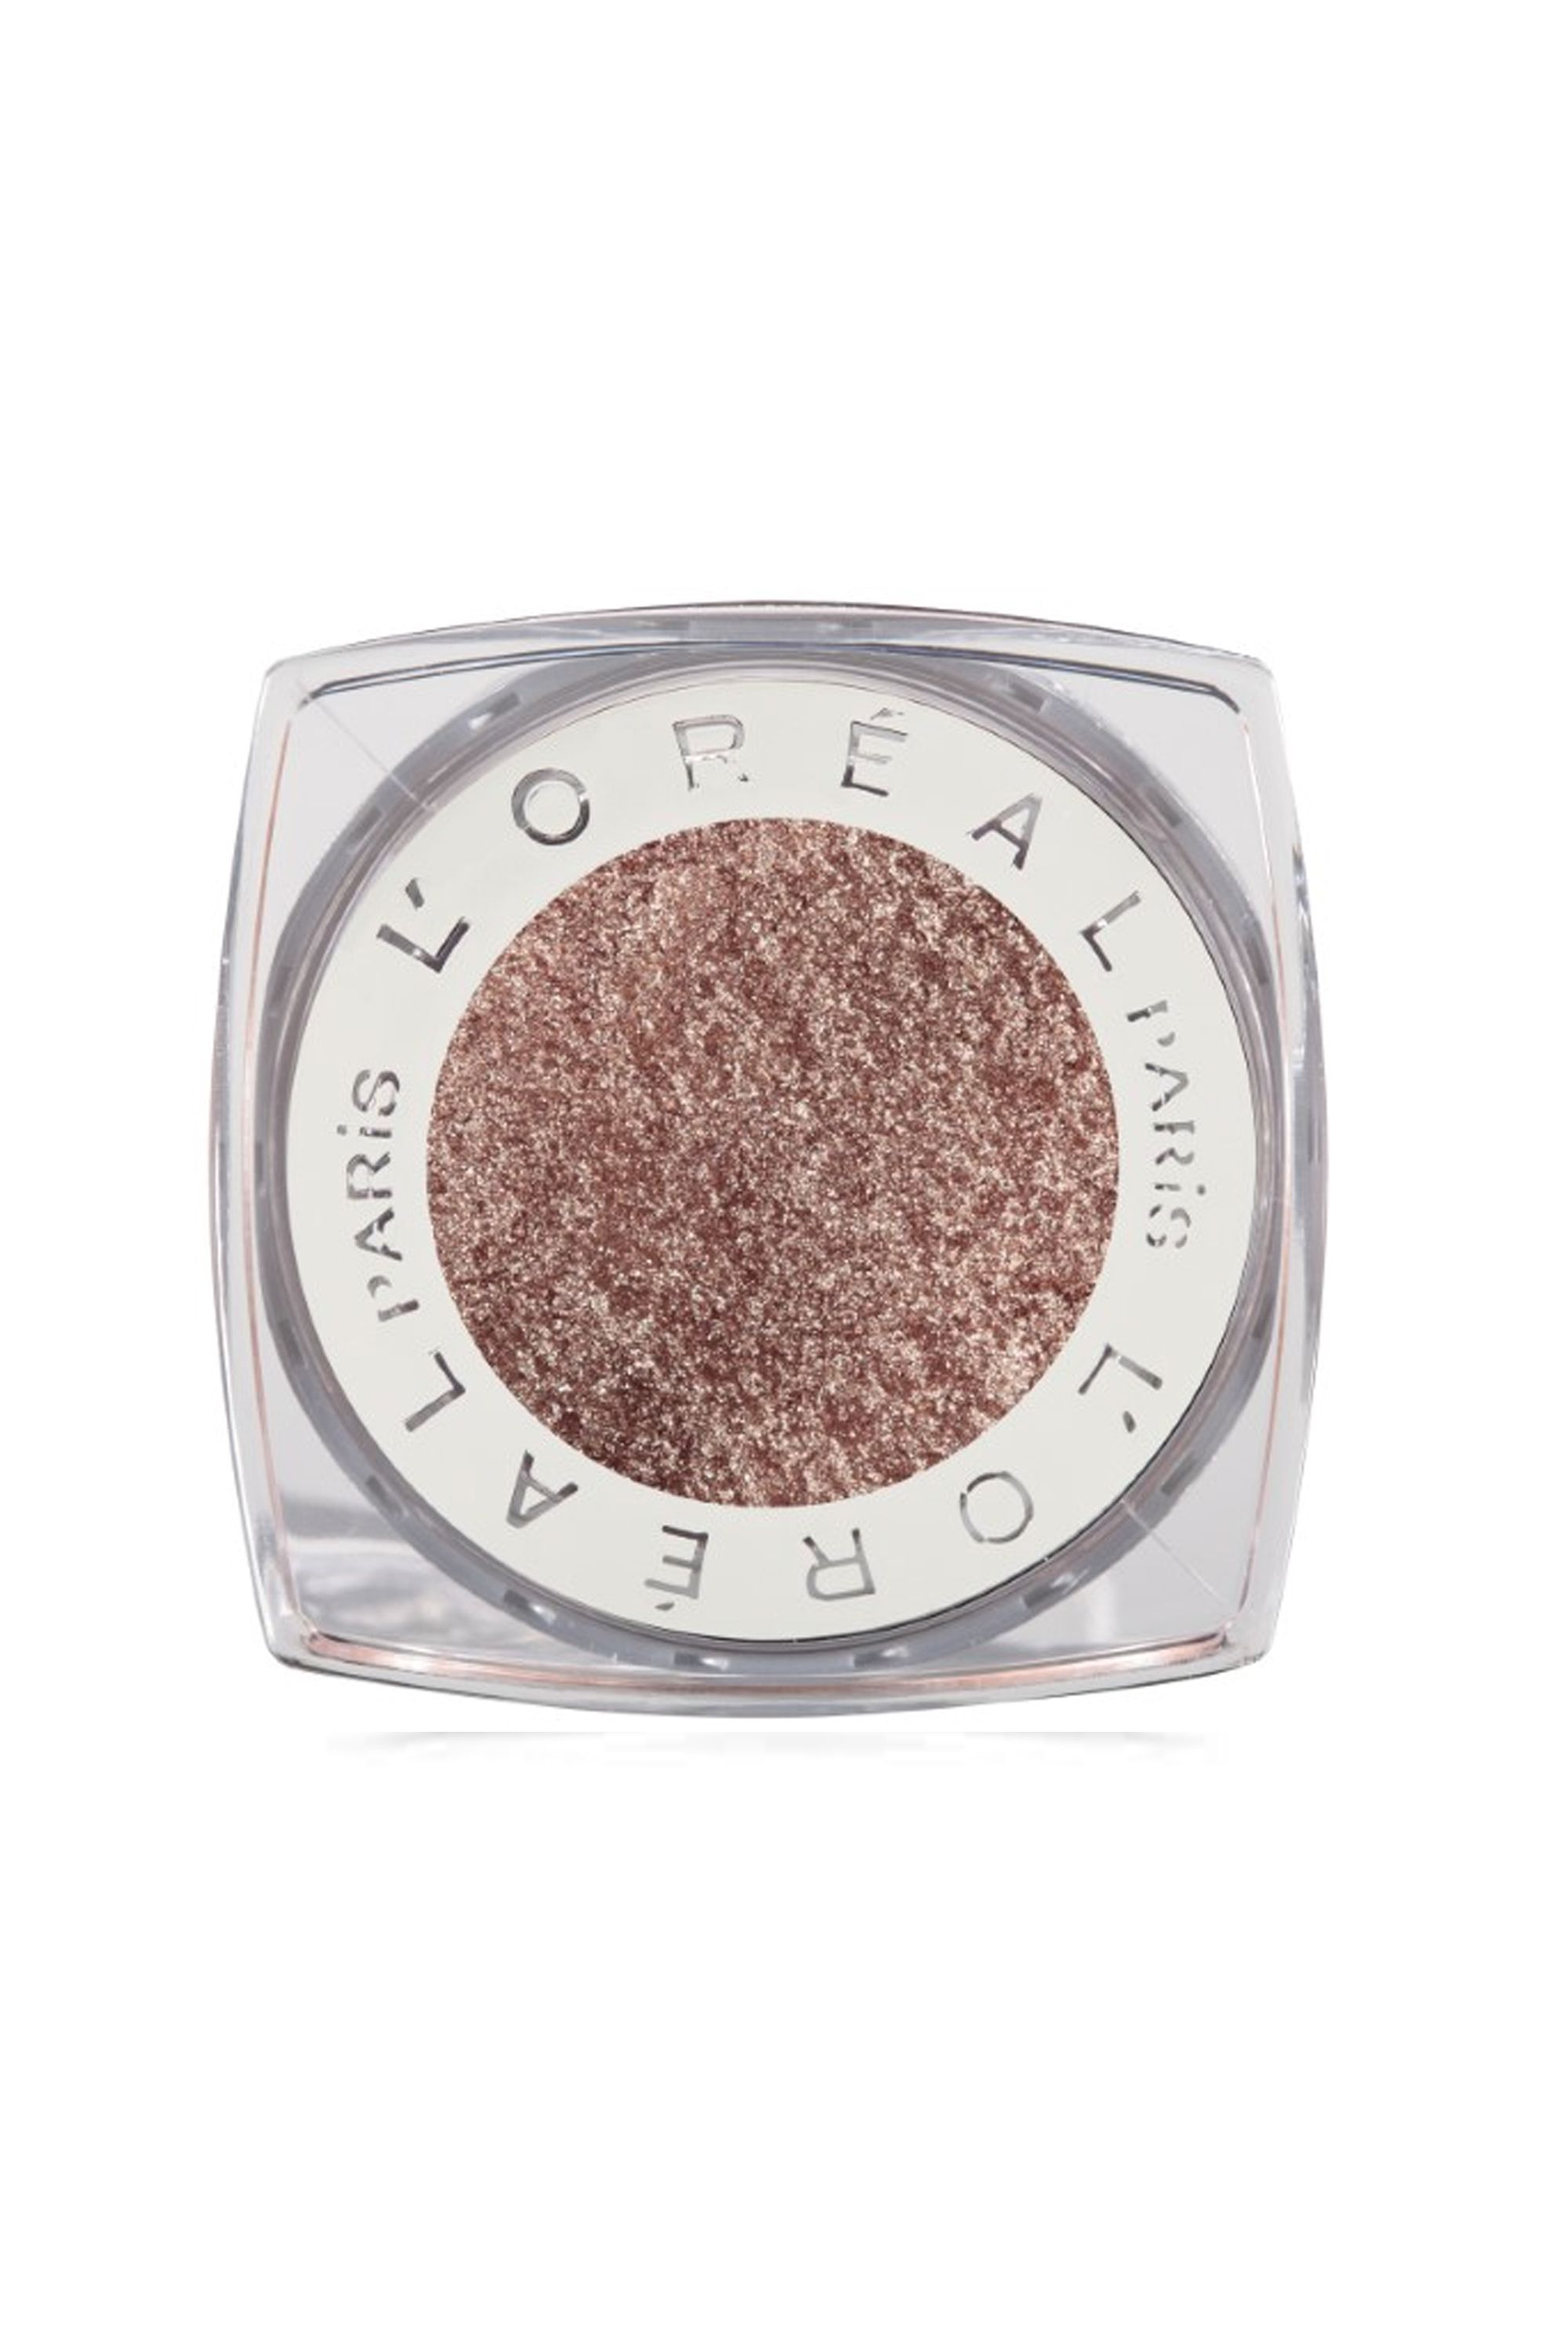 "<p>Oooh, shiny. Metallics are summer perfection as they play up glowing sun-kissed skin. ""Golds, bronzes and coppers bring out the blue because the warmth sparks the cool,"" says makeup artist Tina Turnbow.</p><p>L'Oreal Paris Infallible 24HR Eye Shadow; $6.99, <a href=""http://www.target.com/p/l-oreal-paris-infallible-24hr-eye-shadow/-/A-13887152"" target=""_blank"" data-tracking-id=""recirc-text-link"">target.com</a></p>"